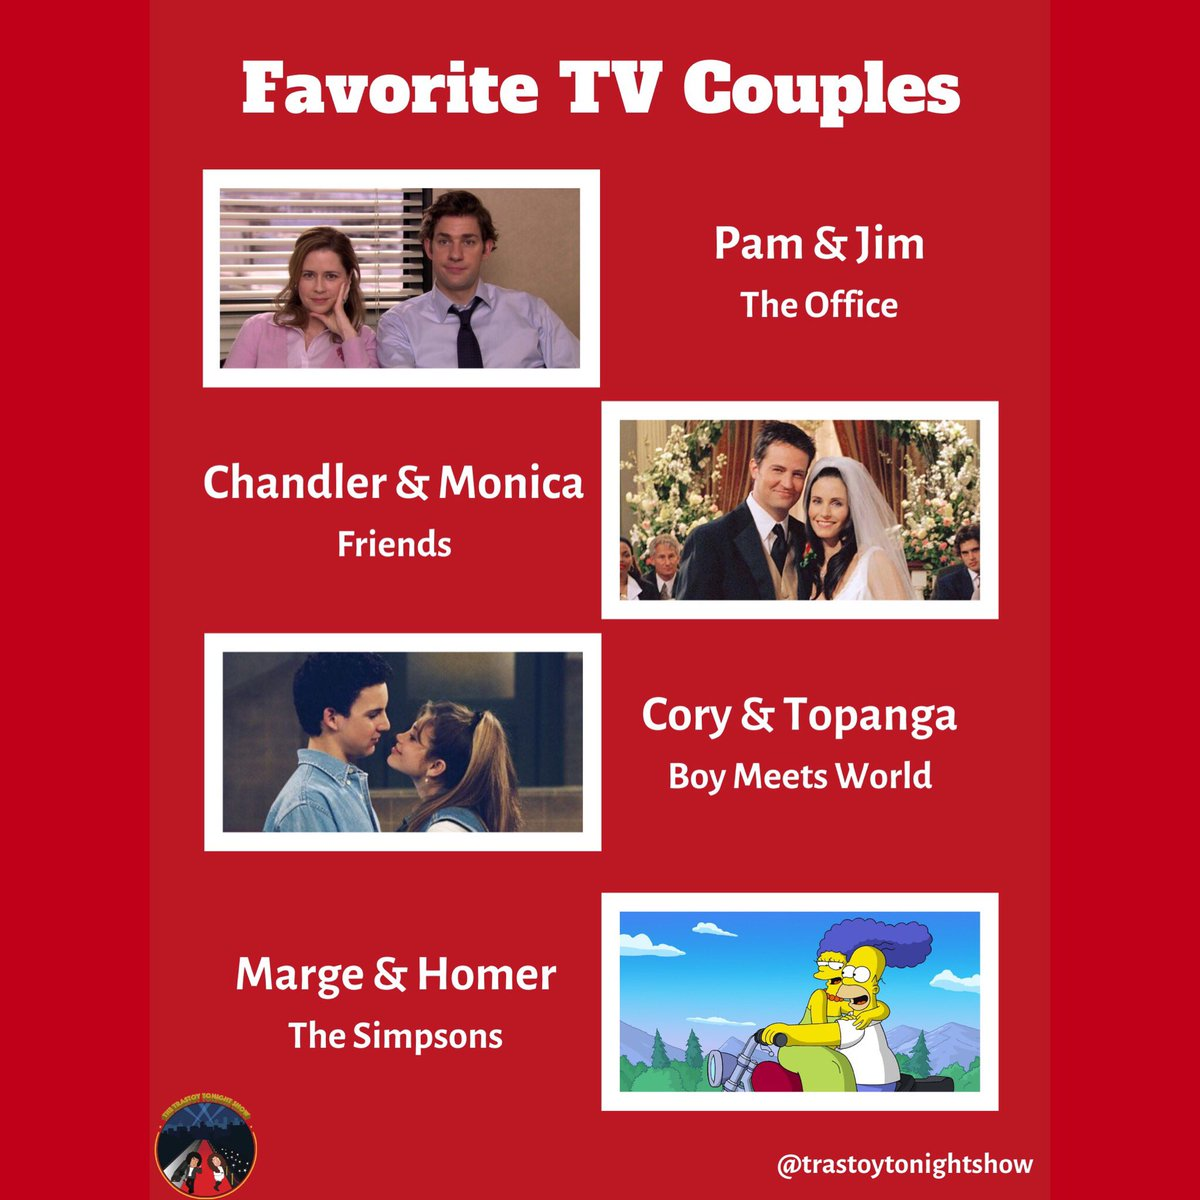 Who are you & your #valentine most like? #PamBeesly #JimHalpert #ChandlerBing #MonicaGeller #CoryMatthews #TopangaLawrence #MargeSimpson #HomerSimpson #TheOffice #Friends #BoyMeetsWorld #TheSimpsons #MichaelScott #ShawnHunter #Phoebe #Ross #MrFeeney #BartSimpson #DwightSchrutepic.twitter.com/m67XkAqaQ9